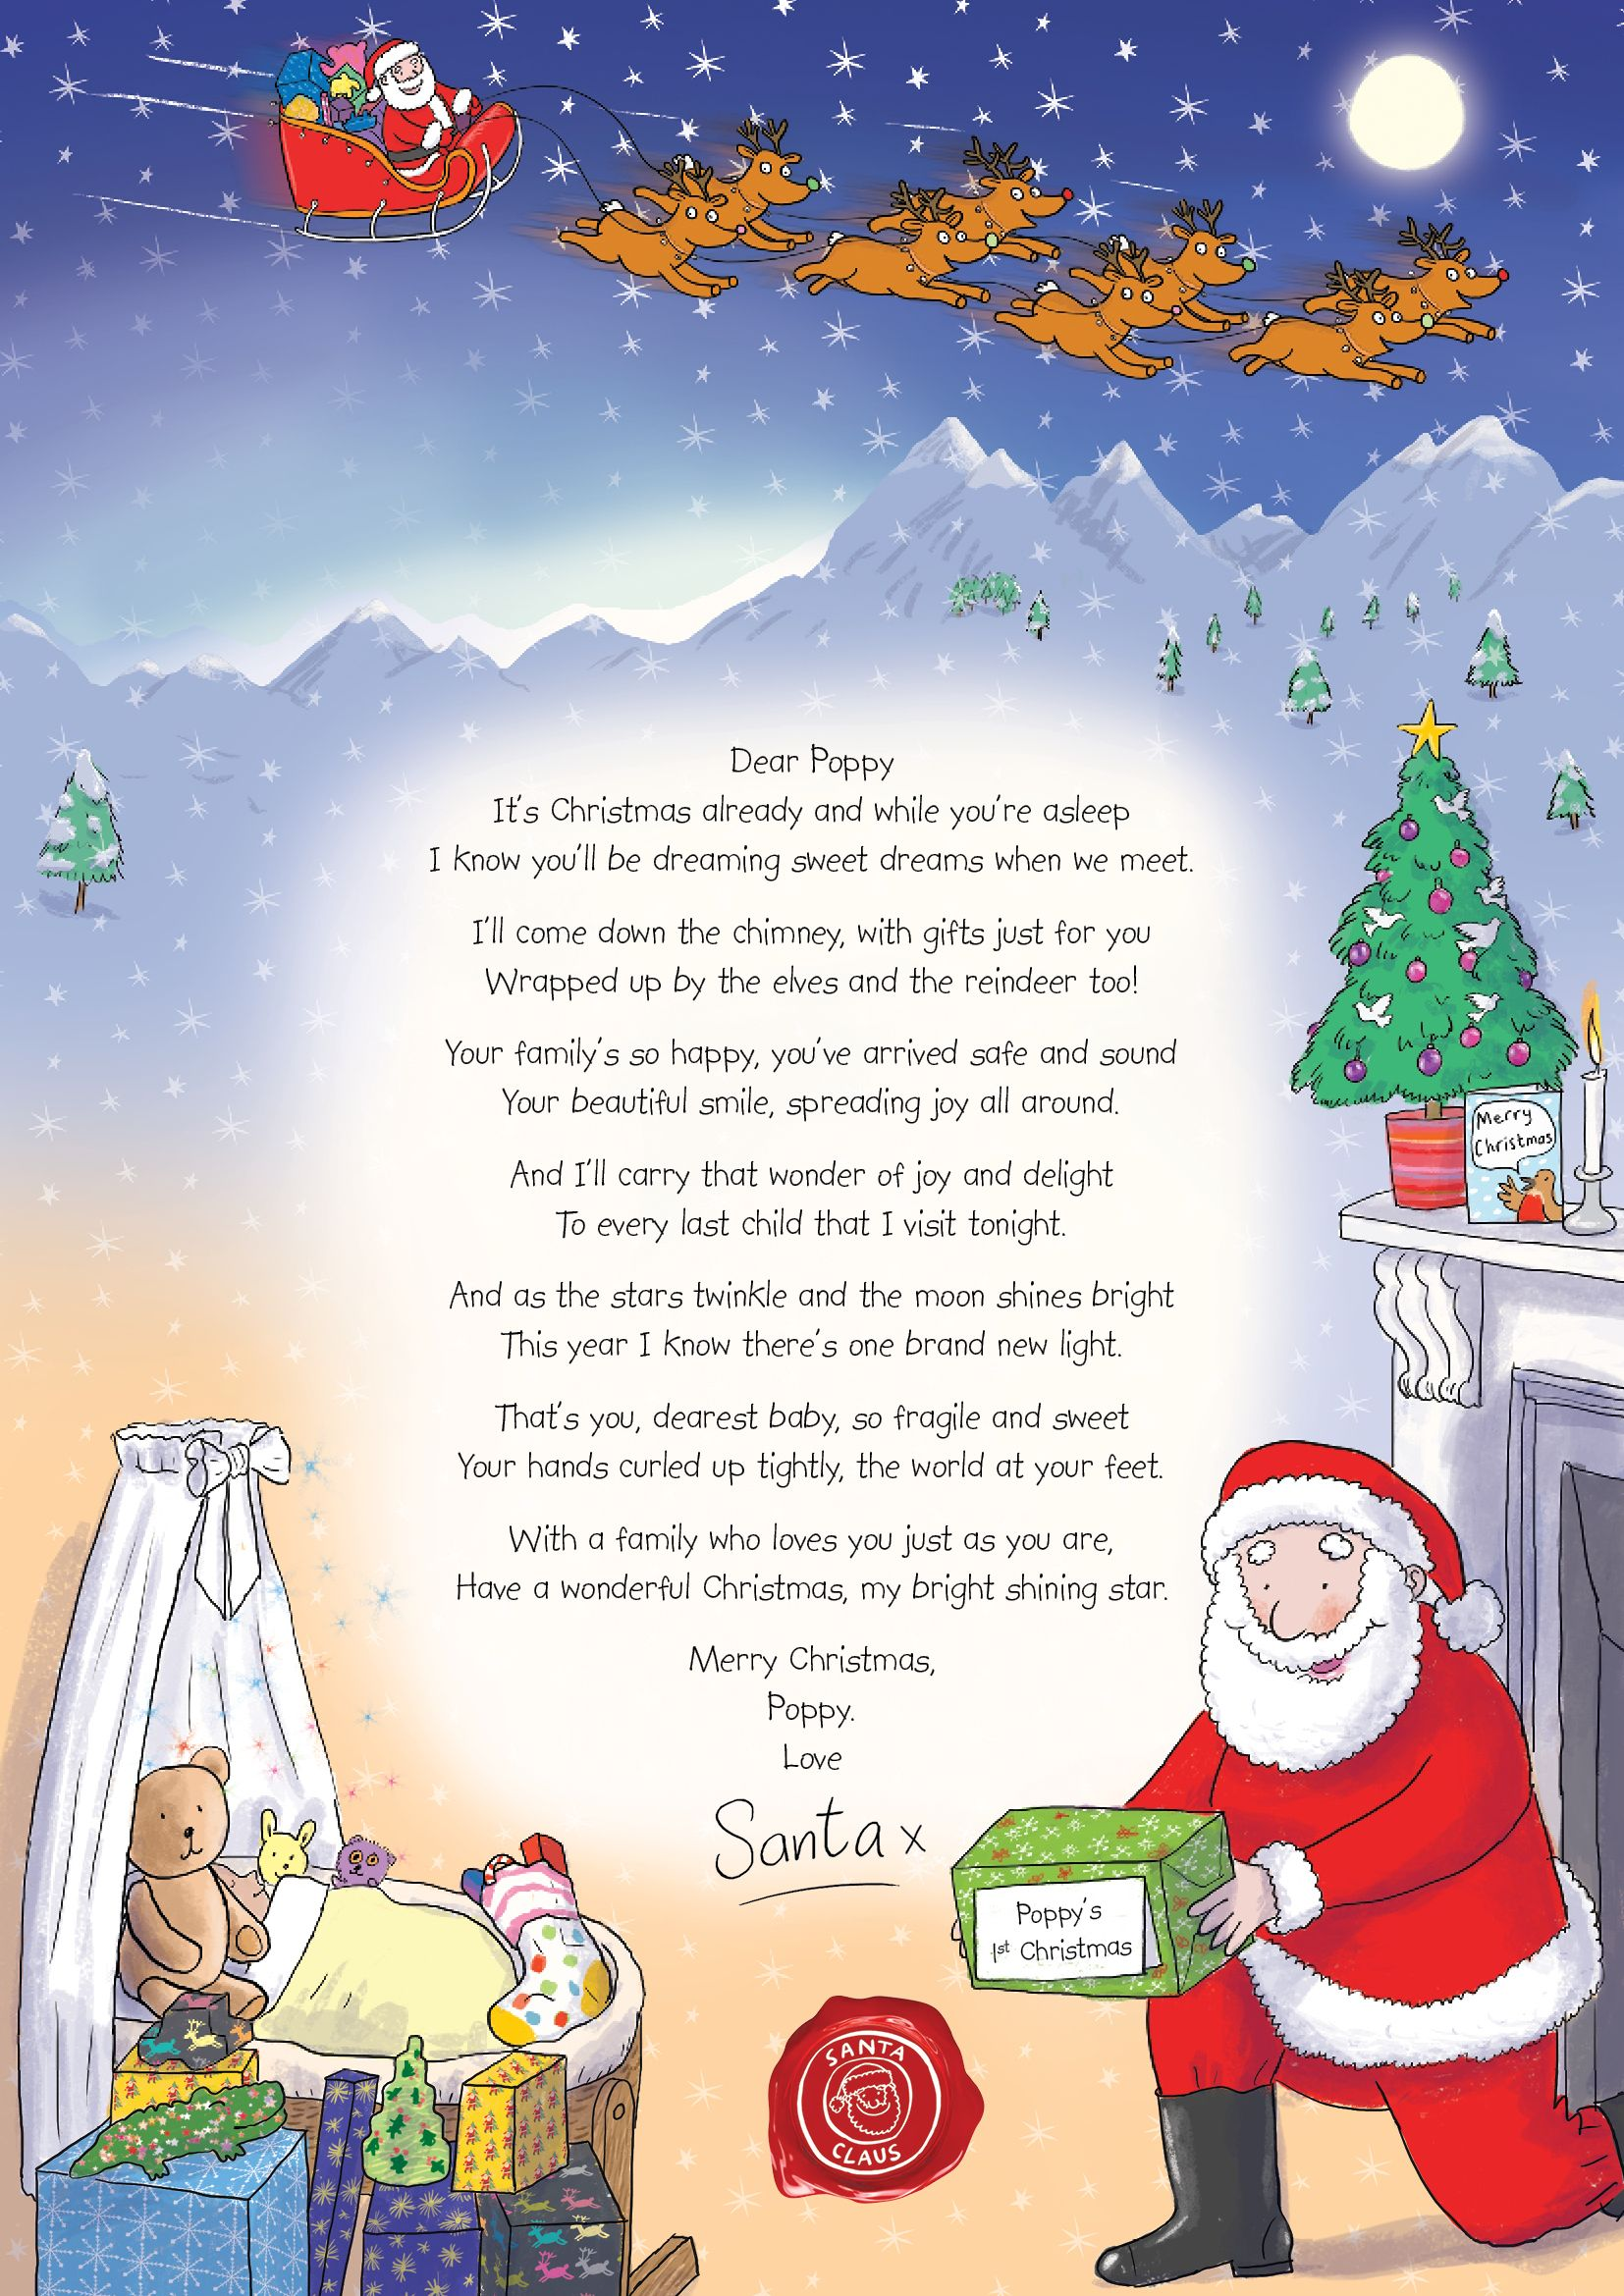 Nspcc Letter From Santa Santa Can Even Write A Special Letter To Celebrate Baby S First Christmas Christmas Lettering Christmas Card Messages Santa Letter